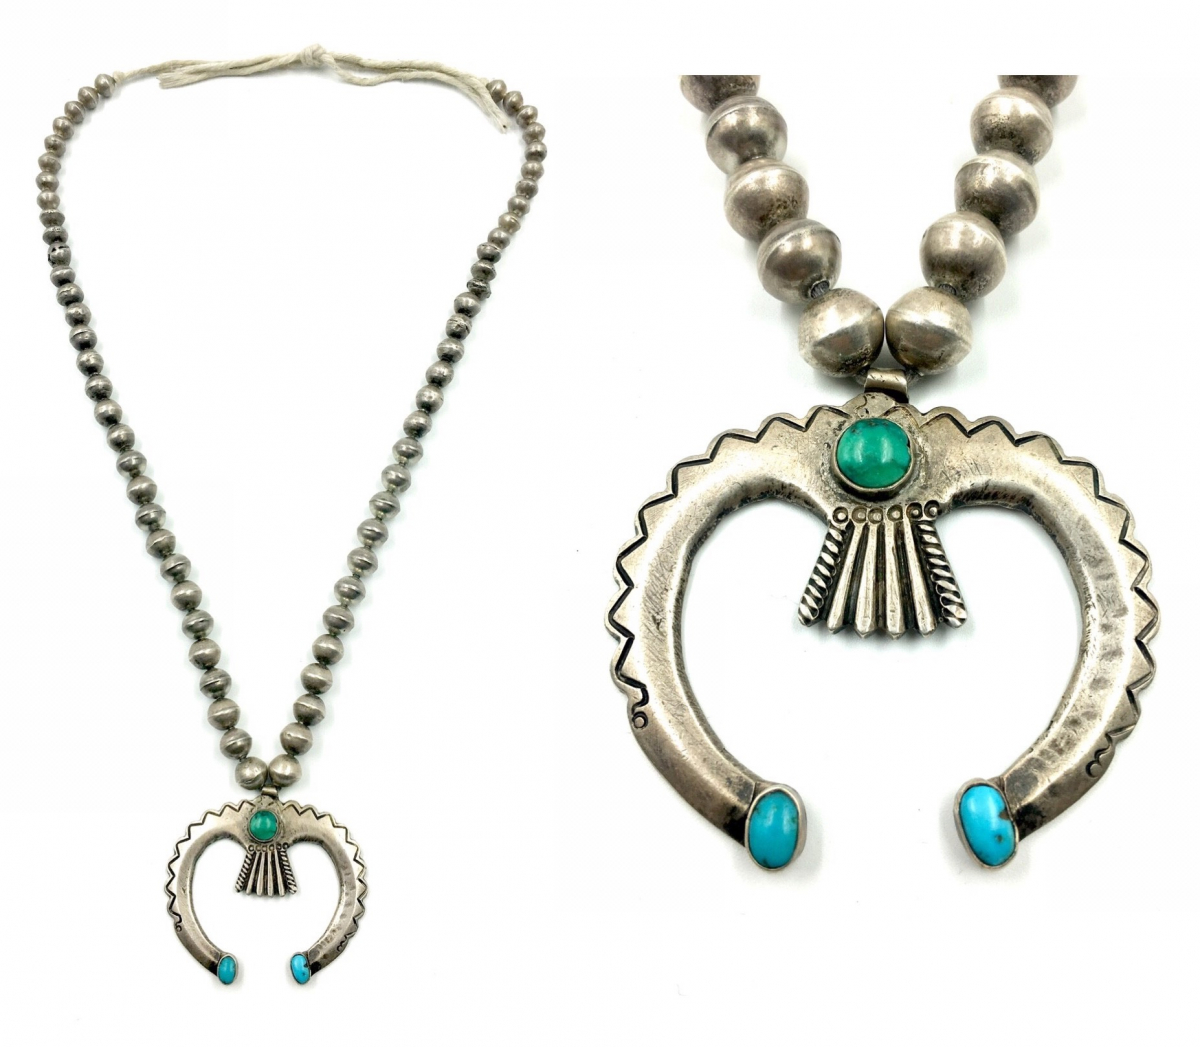 circa 1910-20 silver and turquoise naja